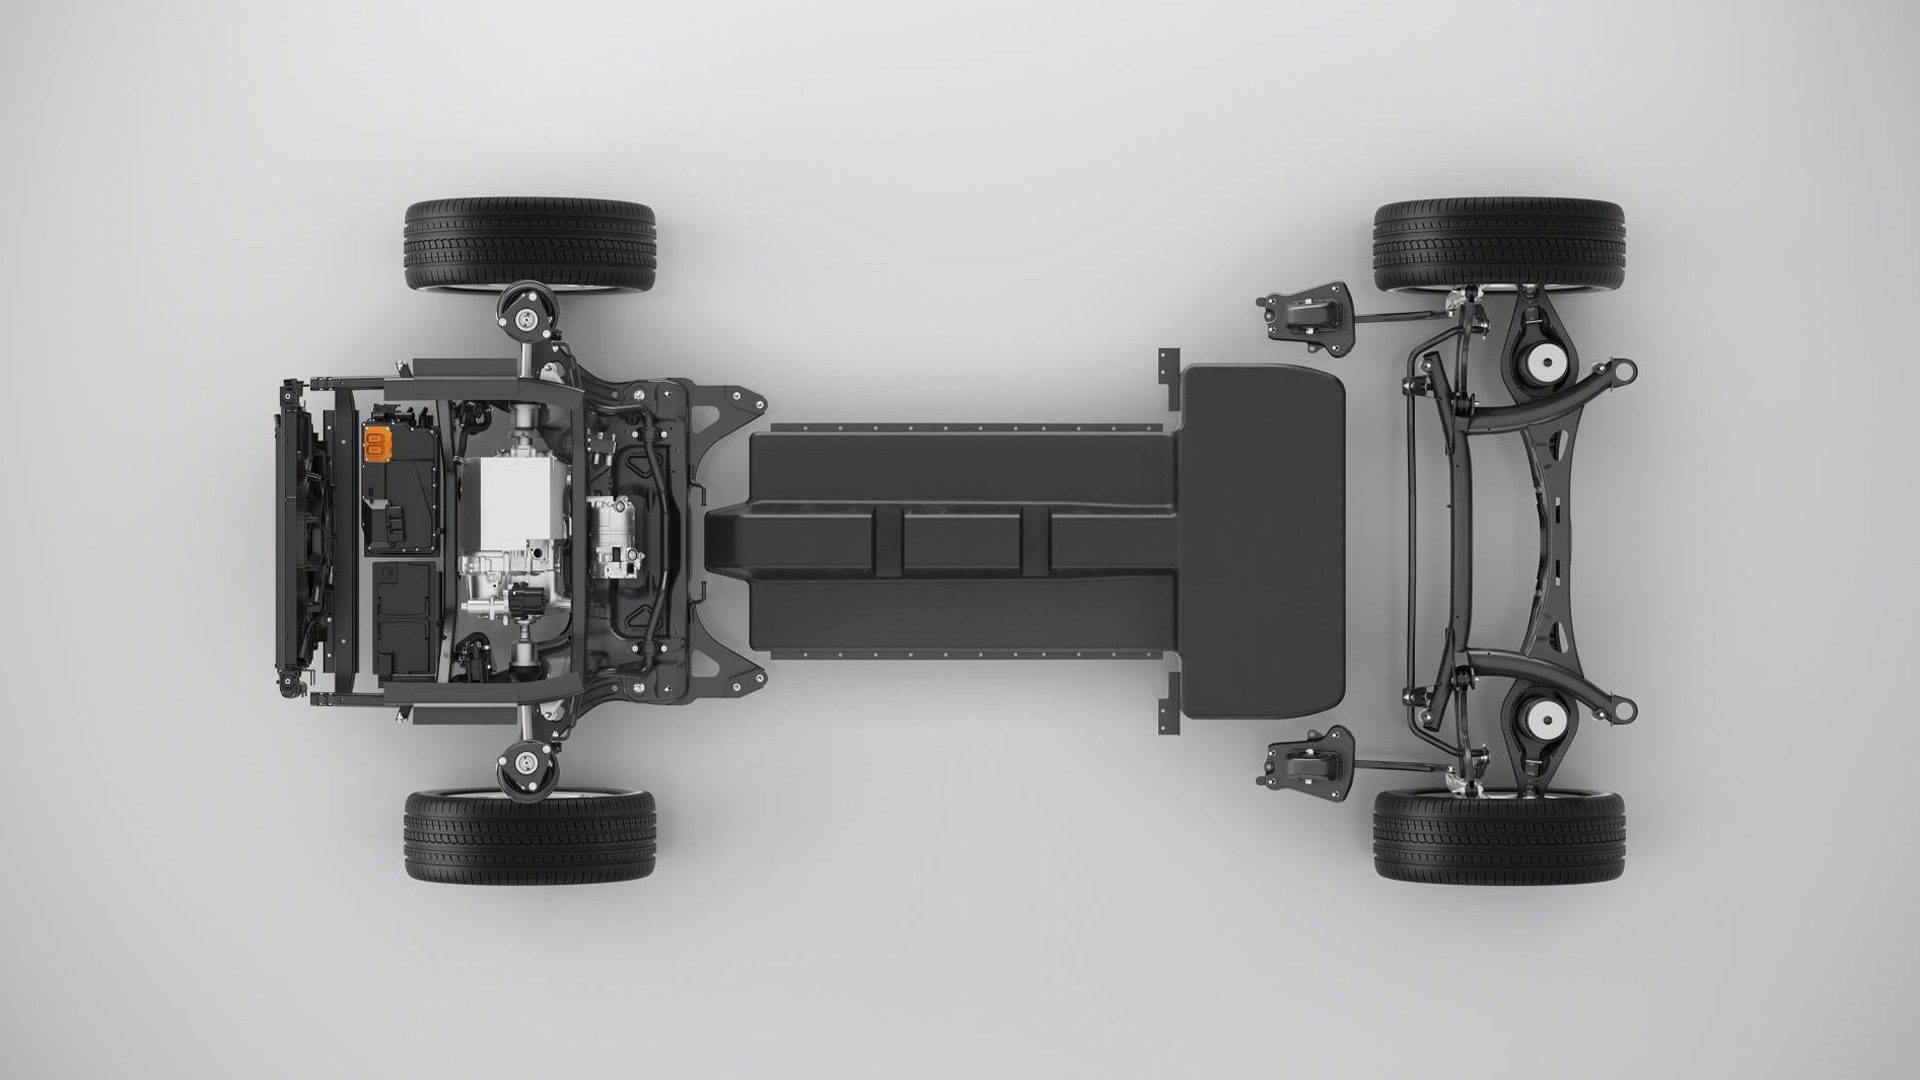 Volvo CMA modular compact car platform in electric configuration